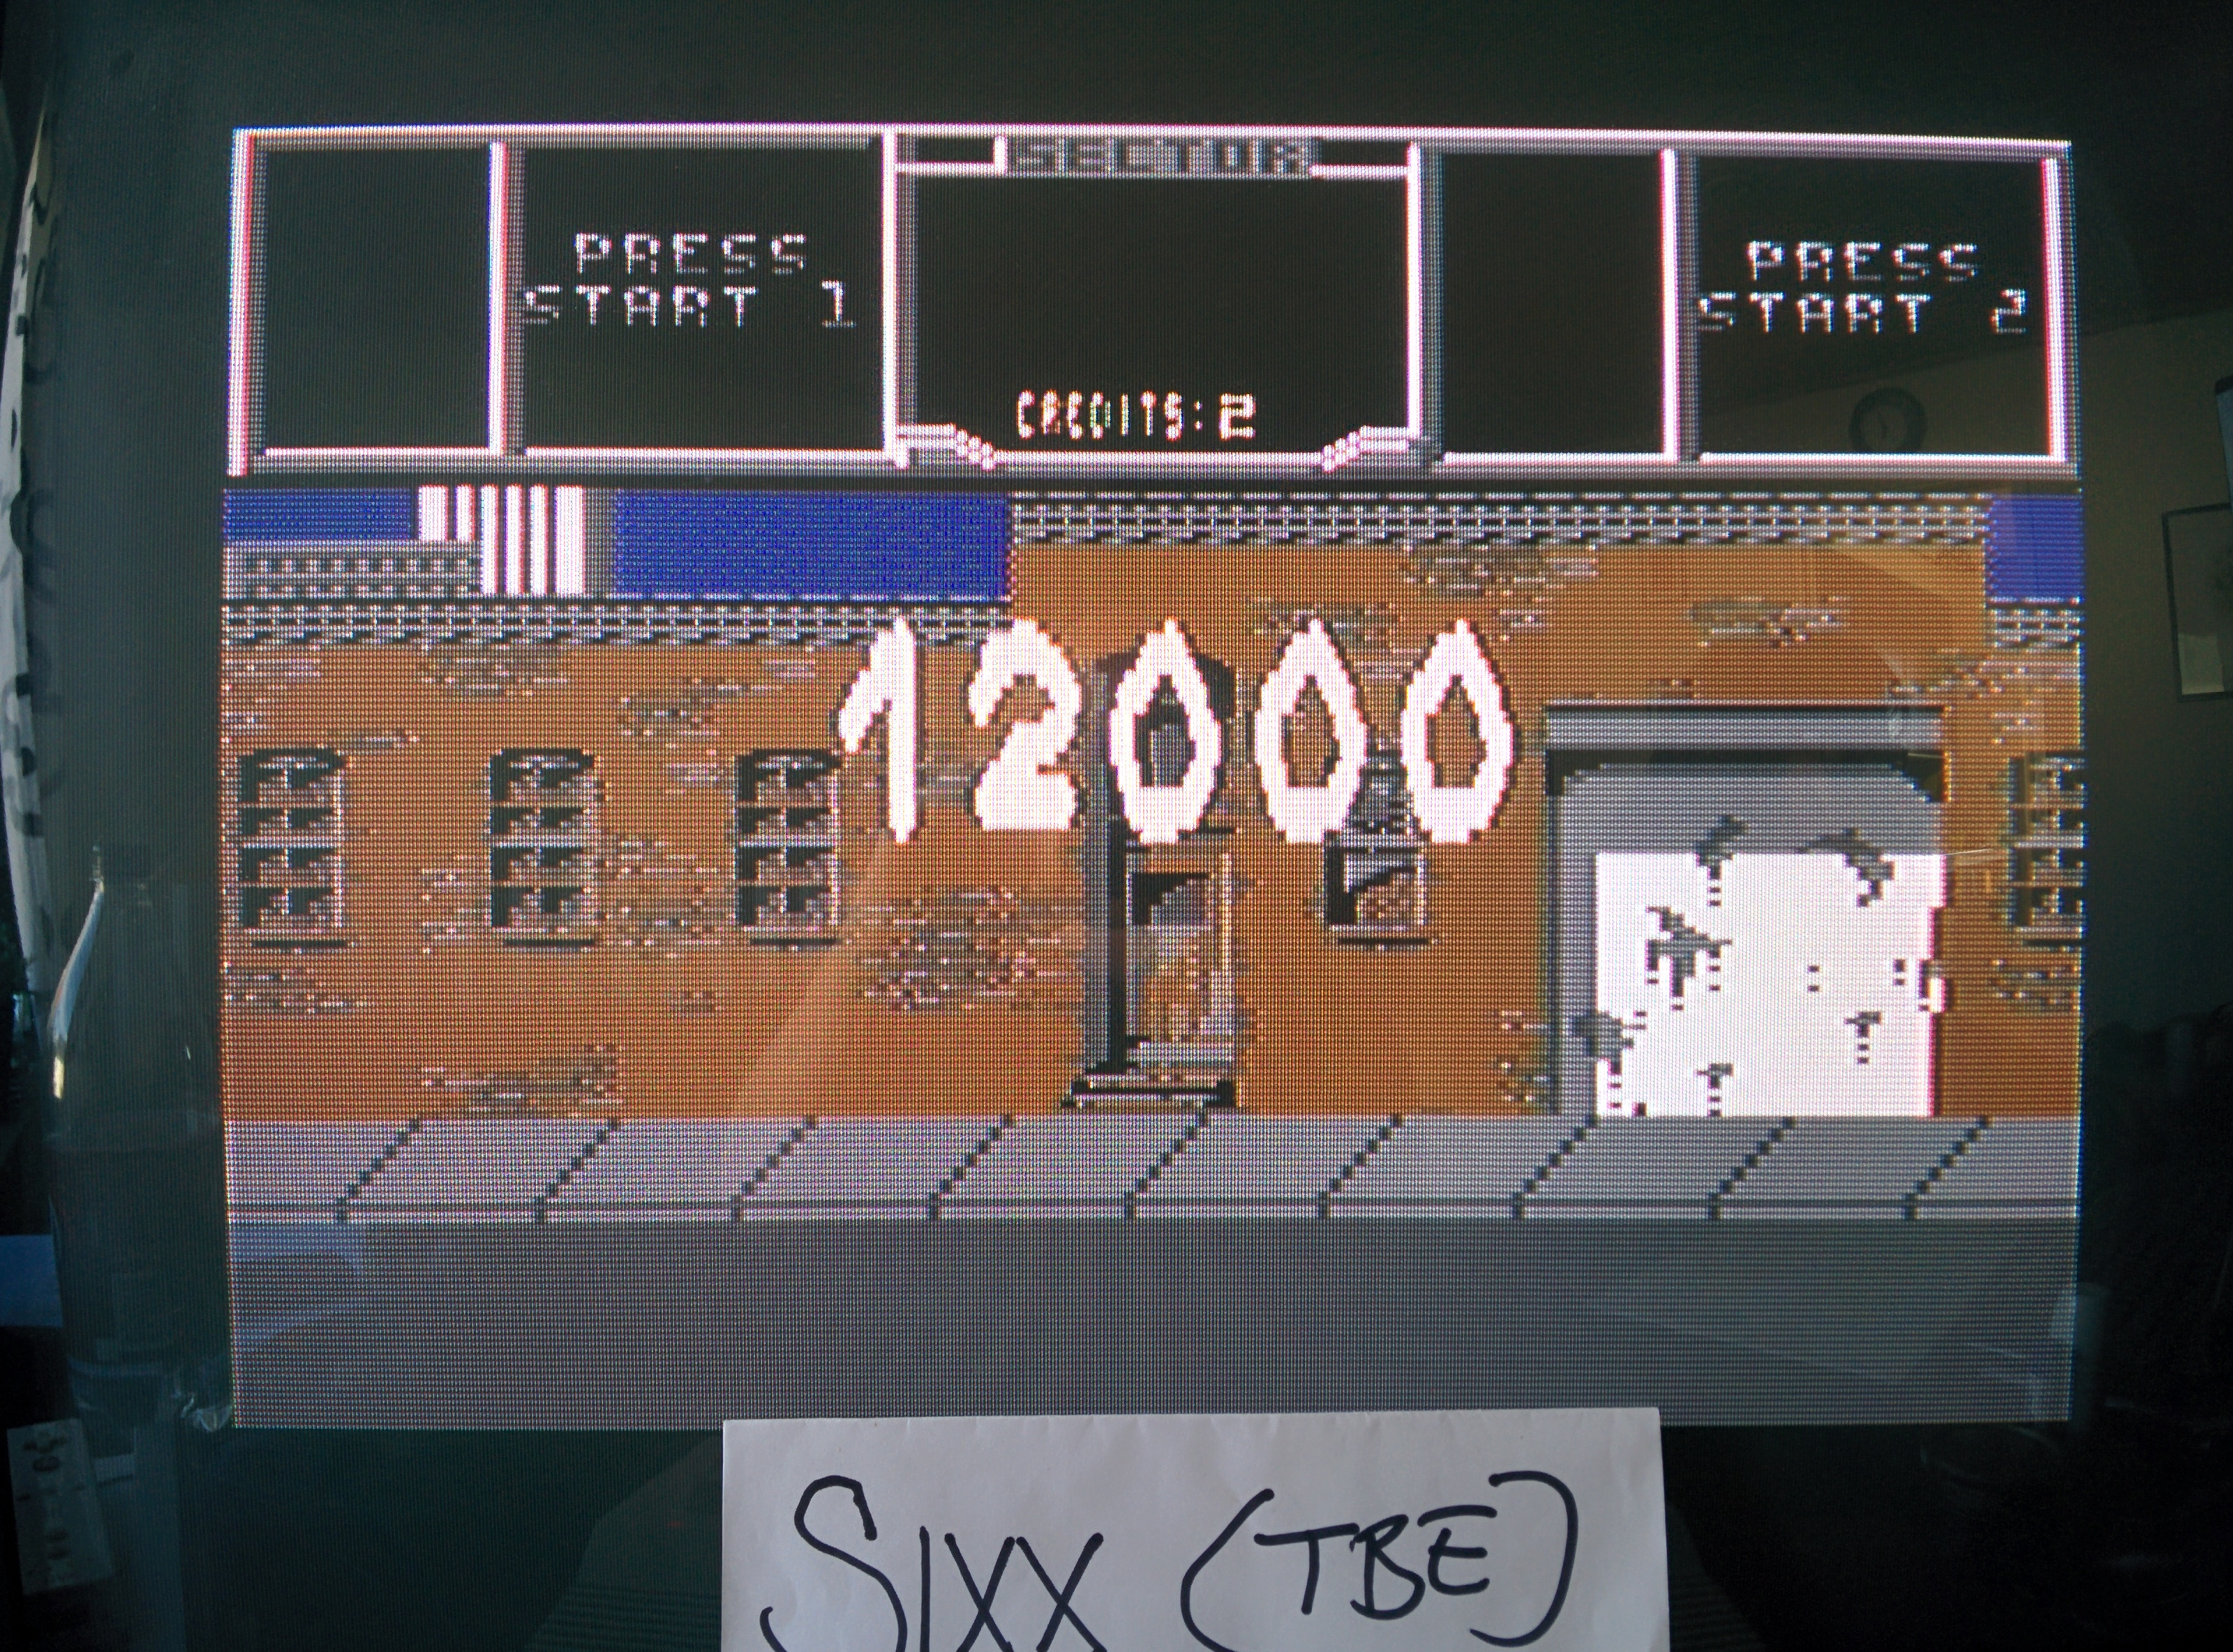 Sixx: NARC (Commodore 64) 12,000 points on 2014-05-01 10:57:52